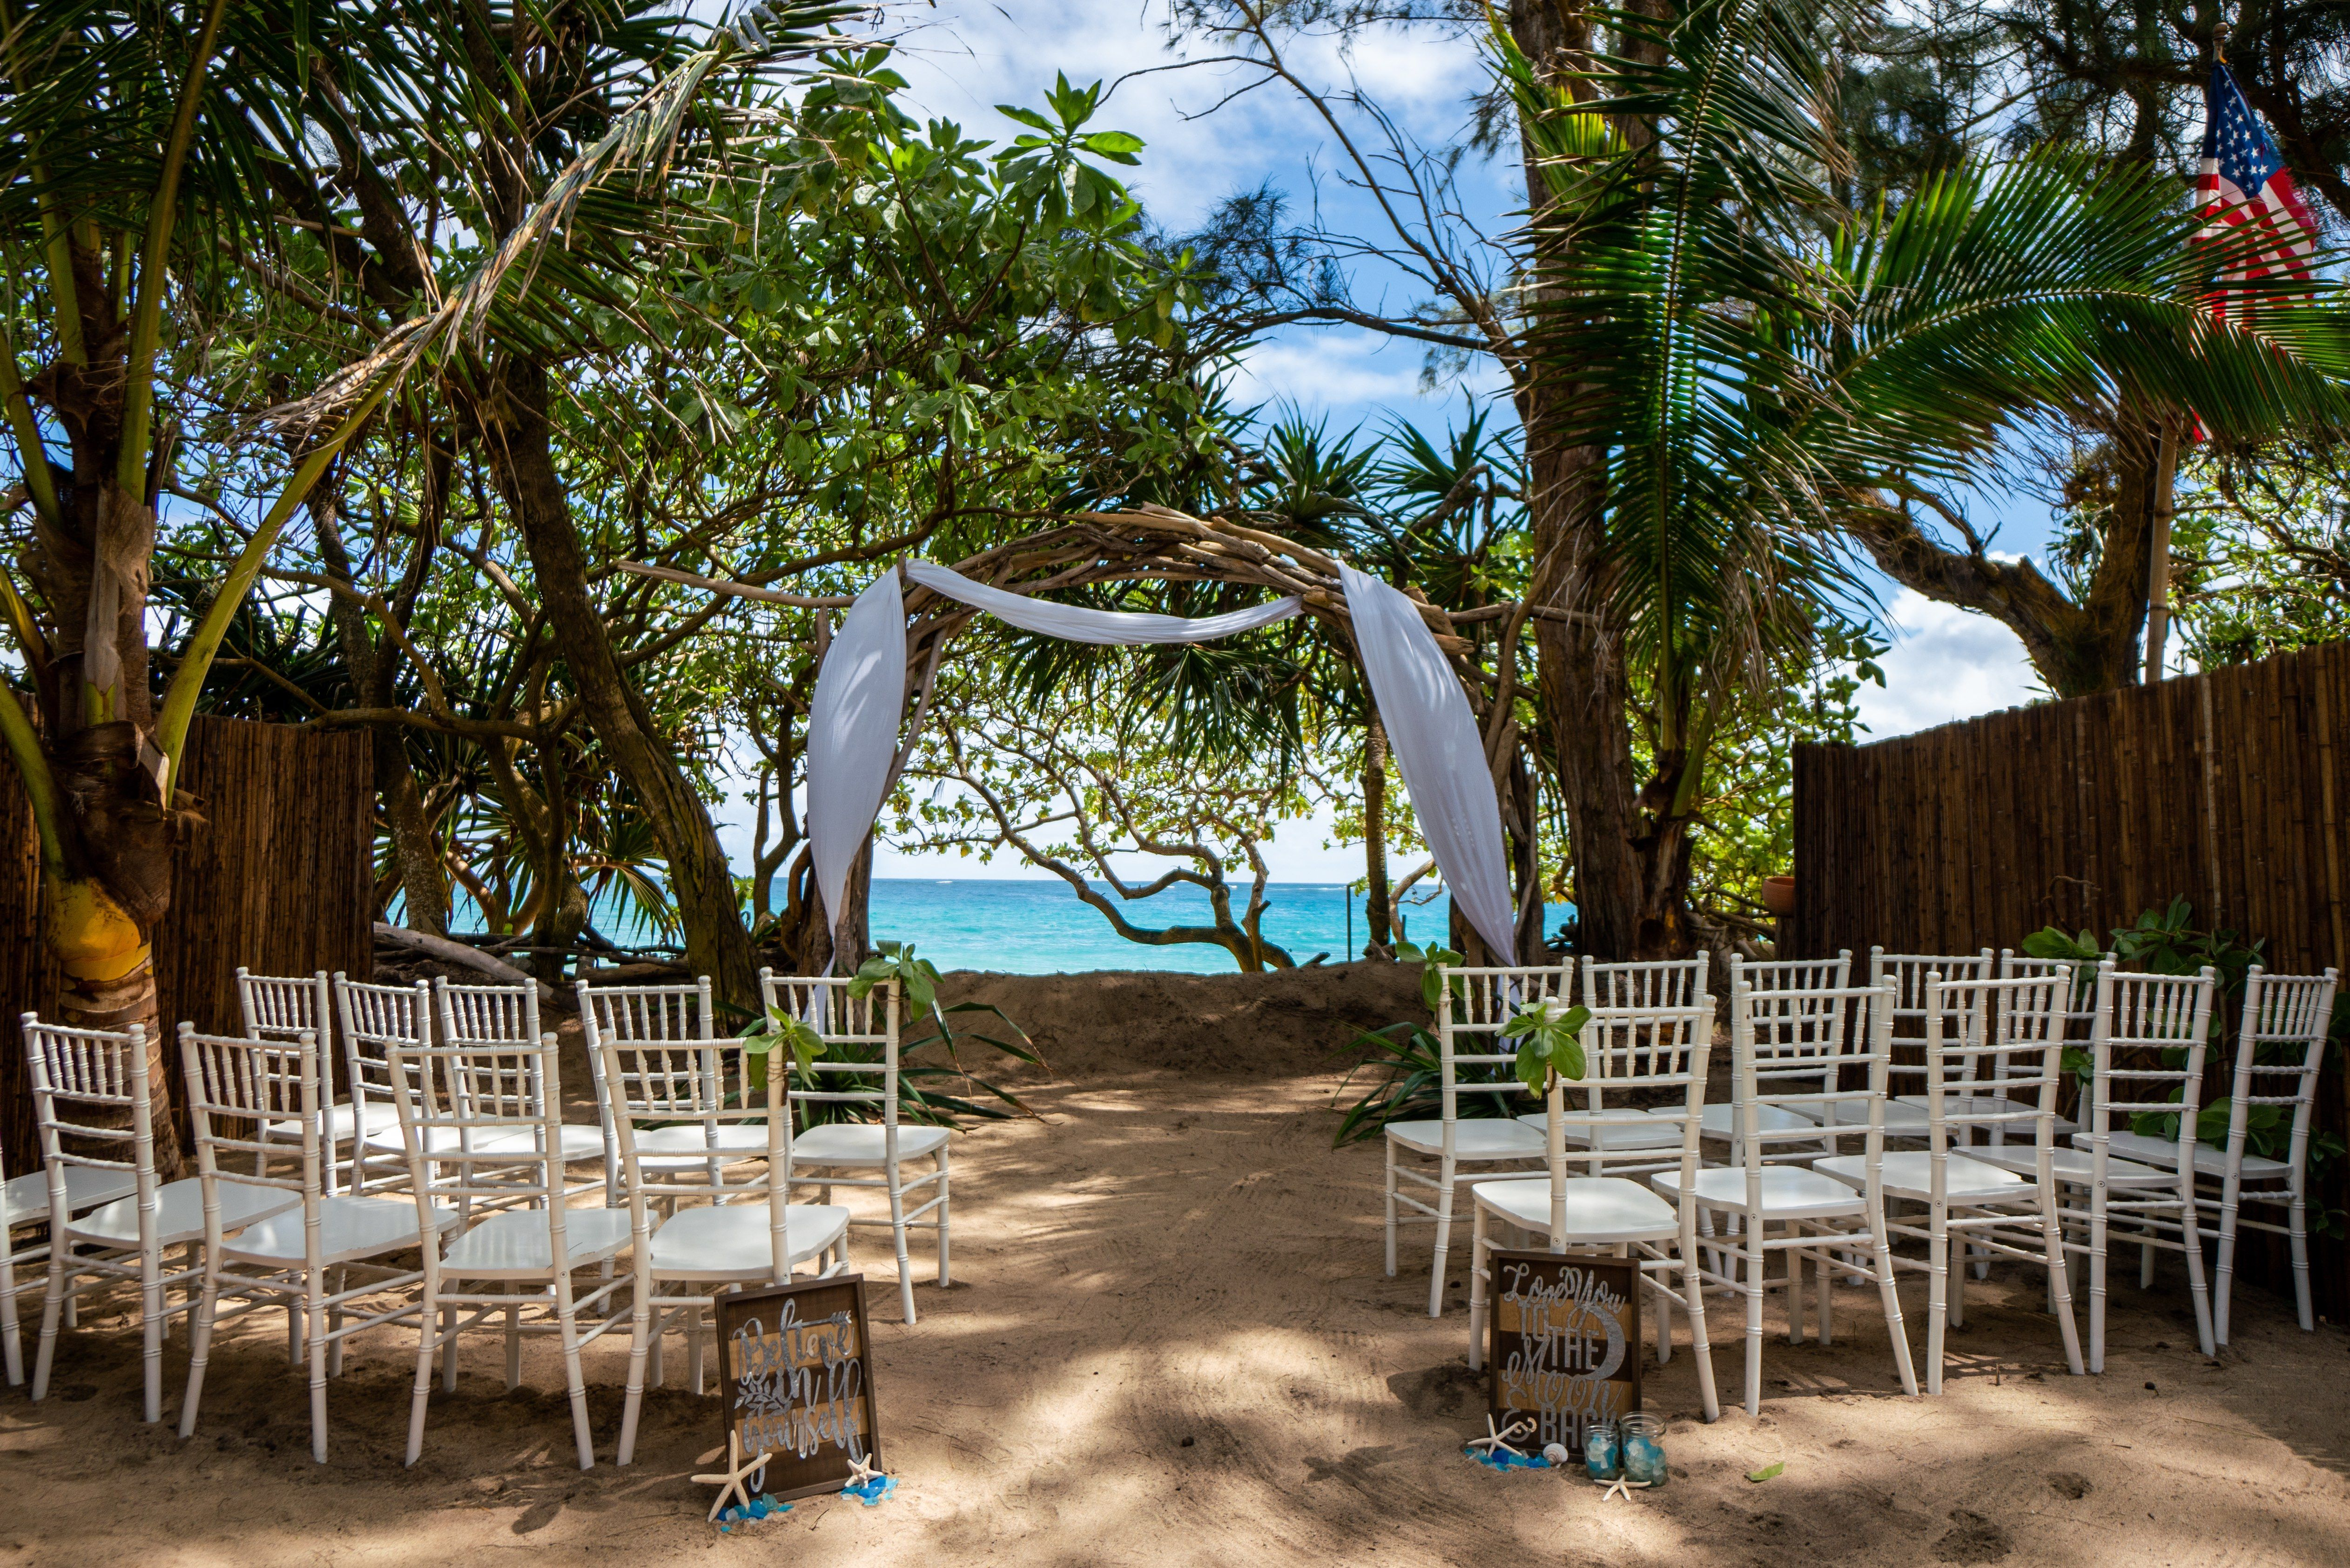 North Shore Laie Oahu Hawaii Wedding Venue Only 500 For Small